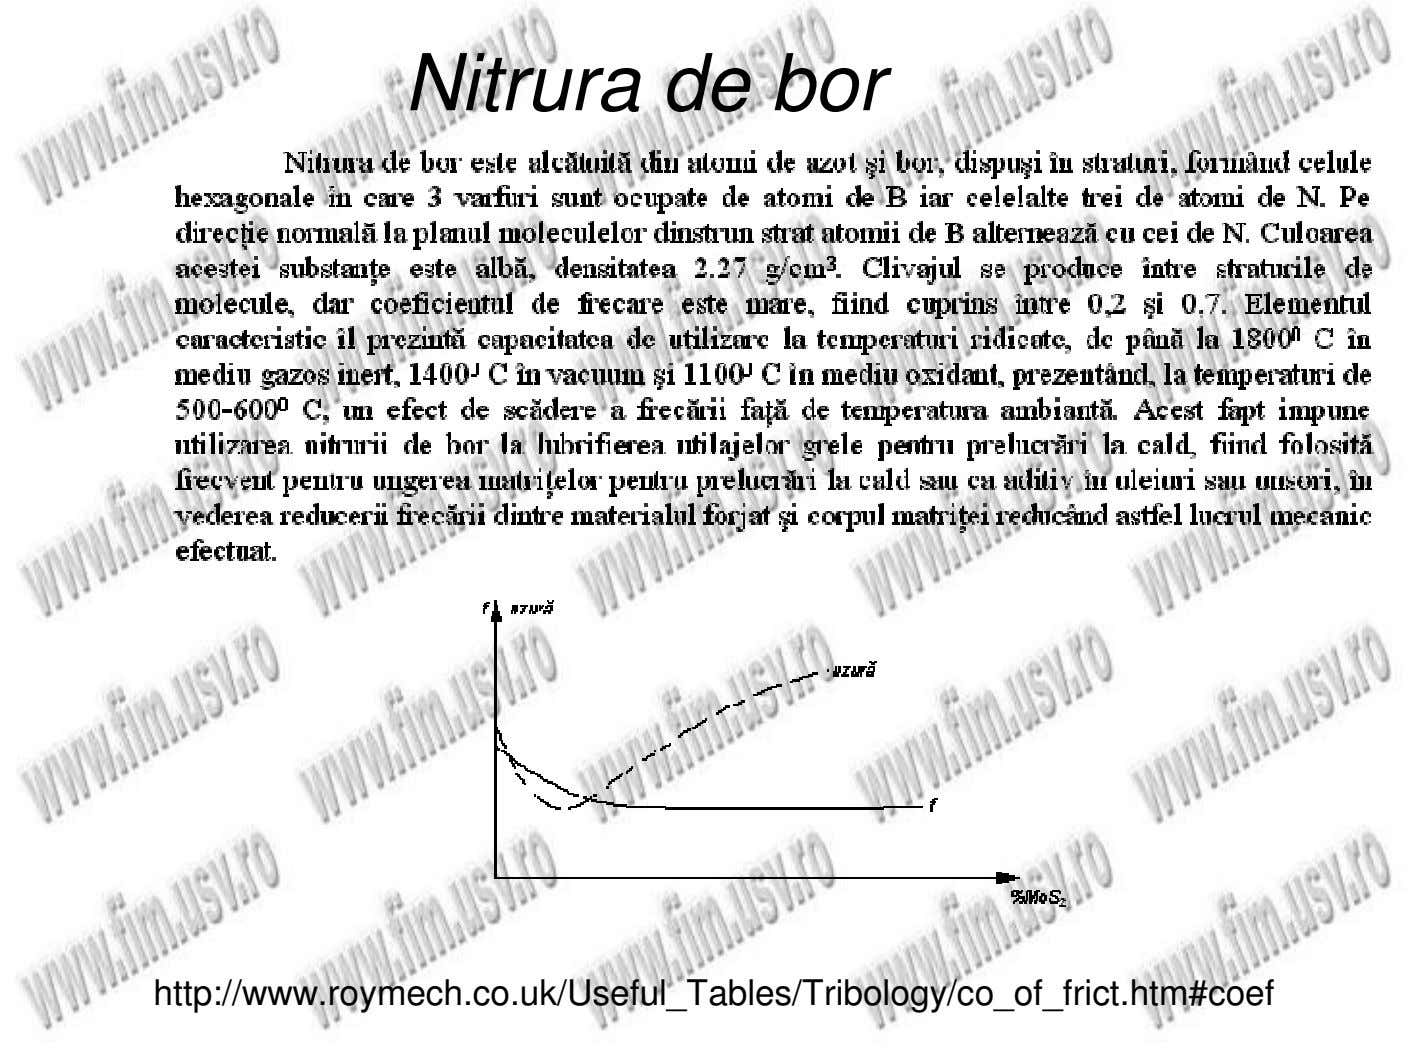 Nitrura de bor http://www.roymech.co.uk/Useful_Tables/Tribology/co_of_frict.htm#coef